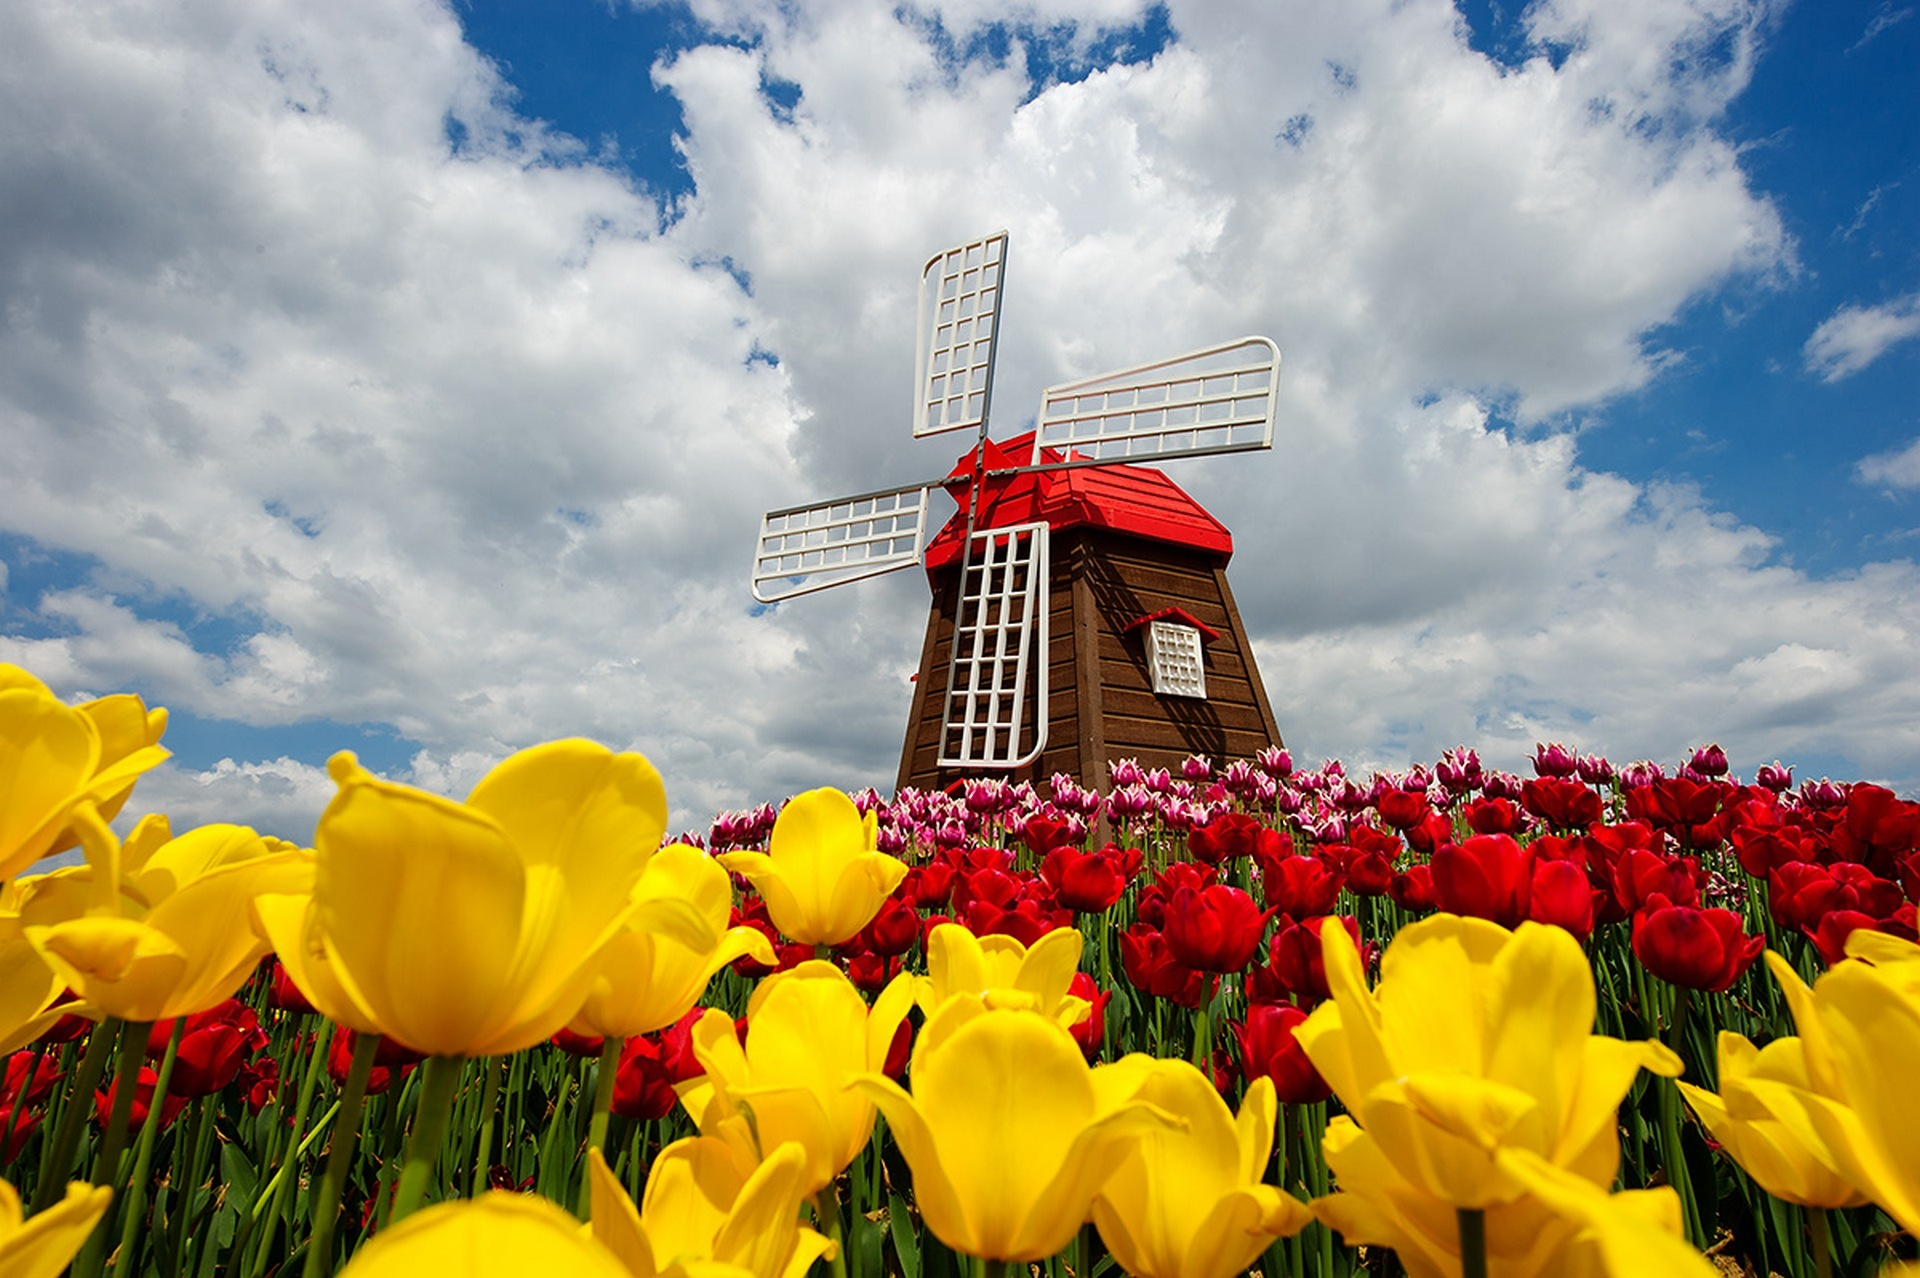 Windmill and Tulips.